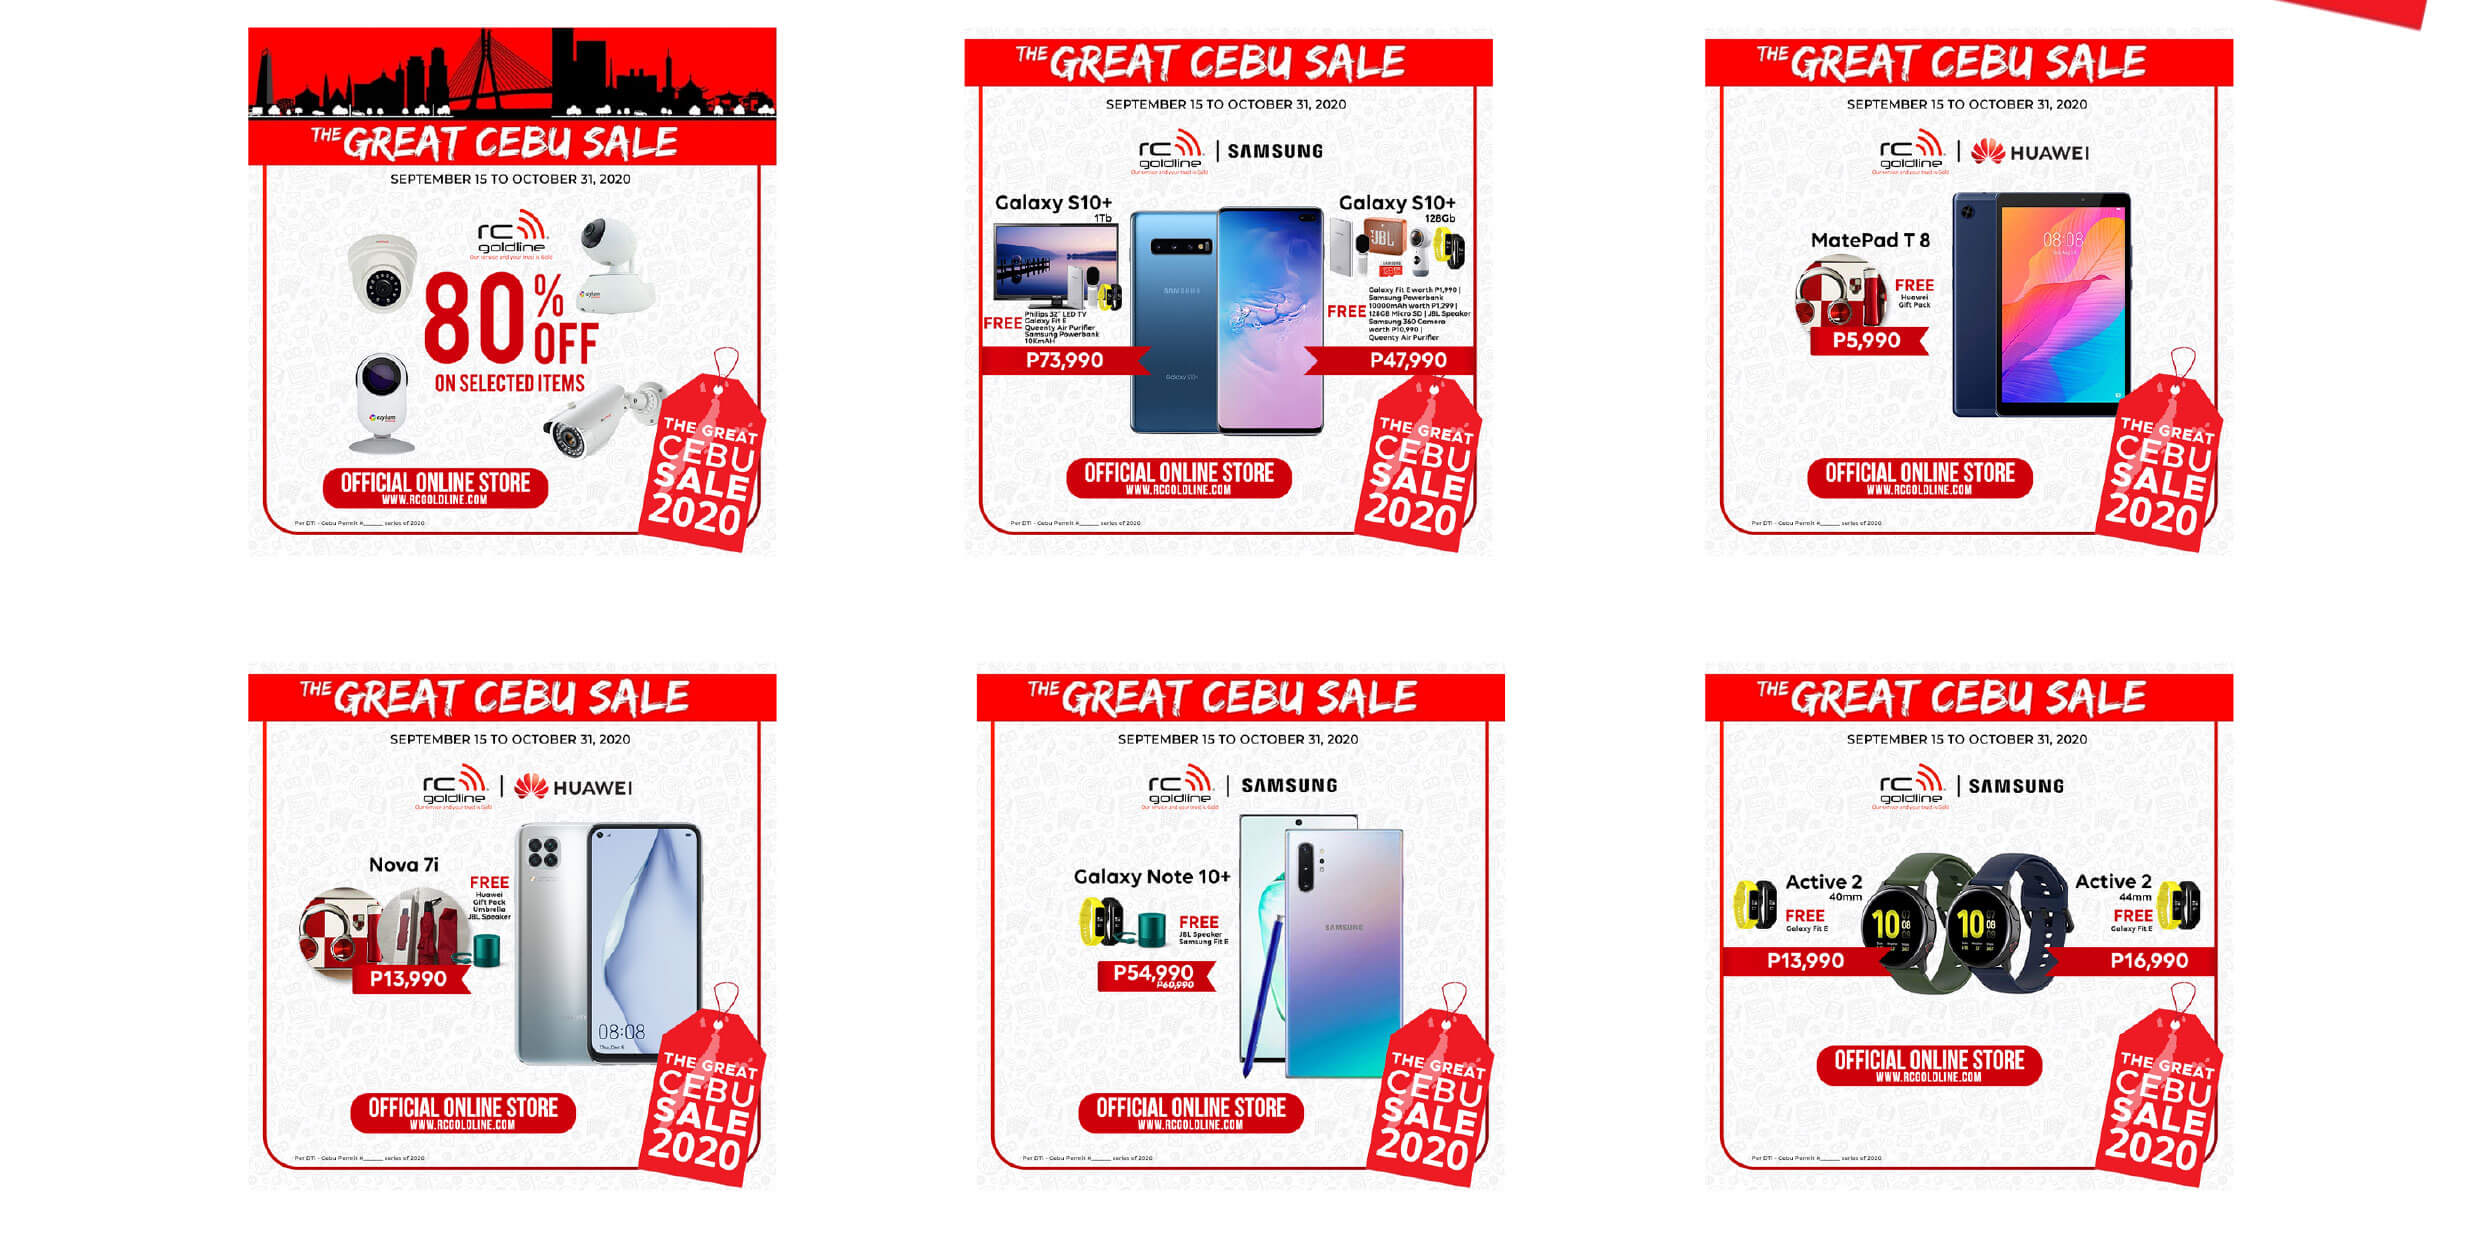 RC Goldline offers great price, freebies for gadget purchases